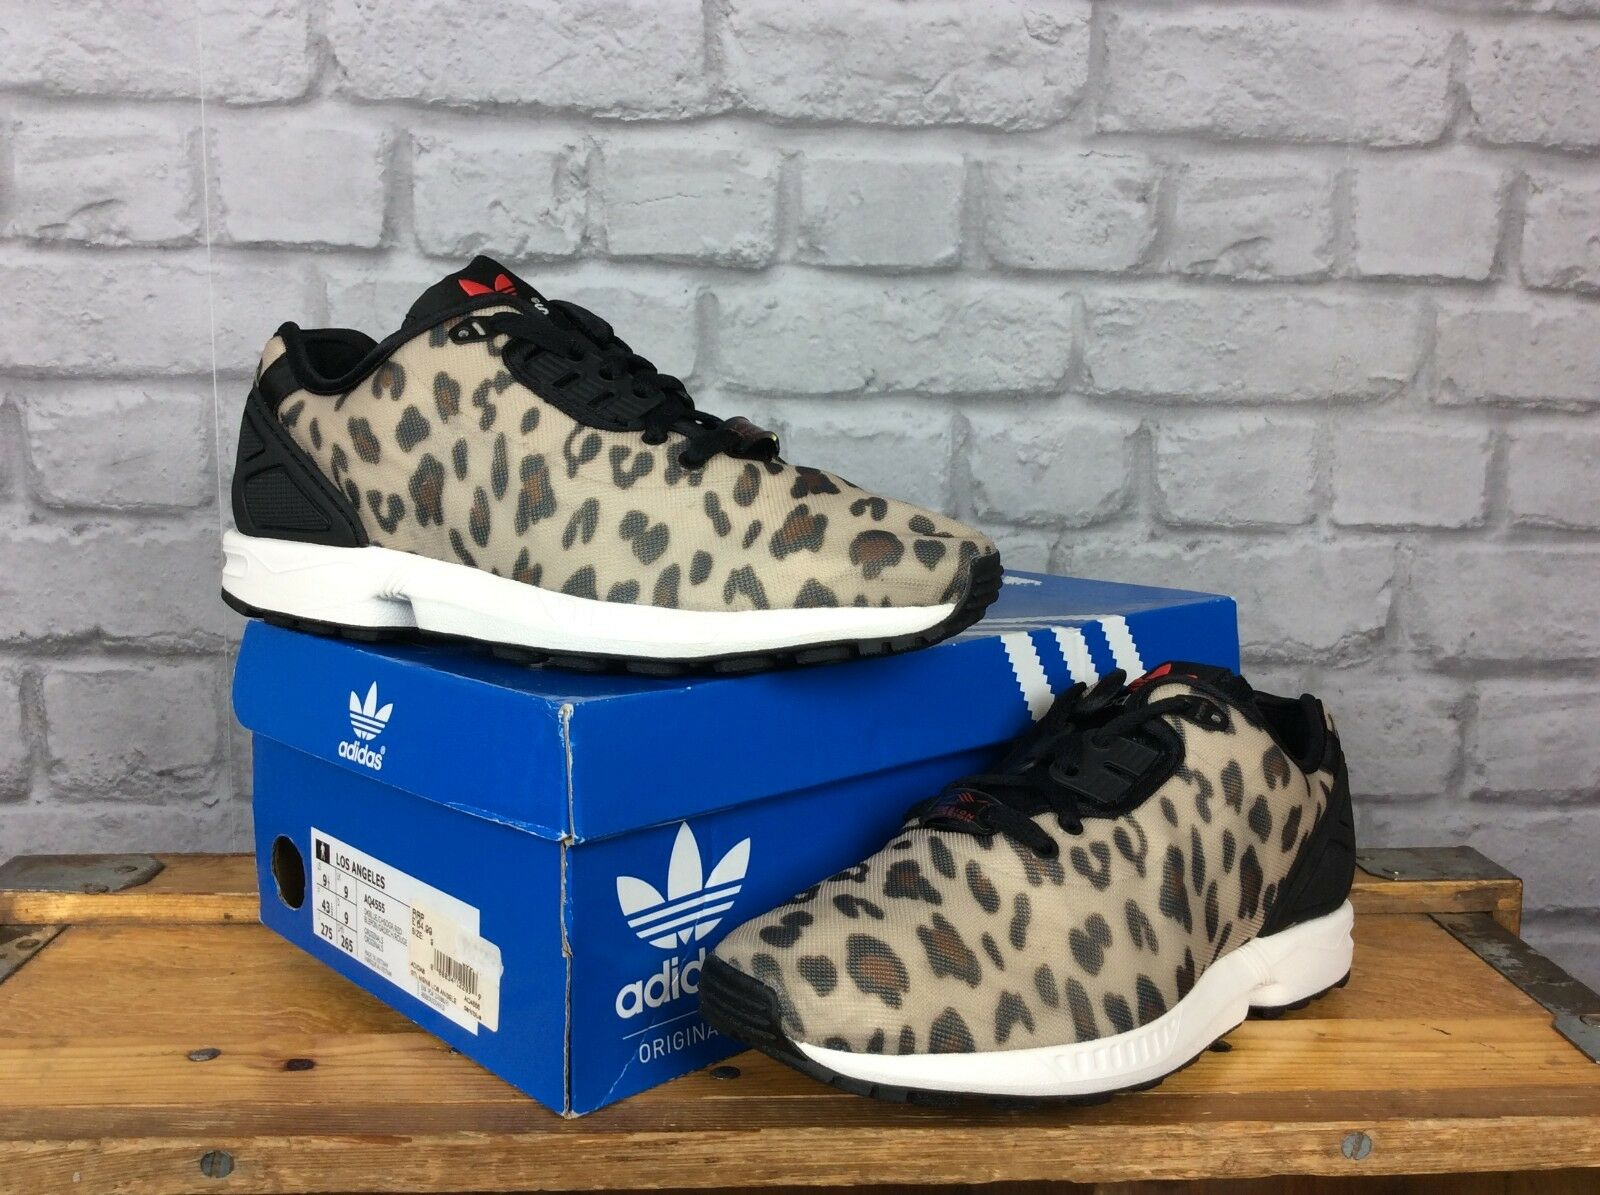 ADIDAS6.5 EU 40 ZX FLUX TORSION DECON LEOPARD PRINT TRAINERS 85 homme LADIES